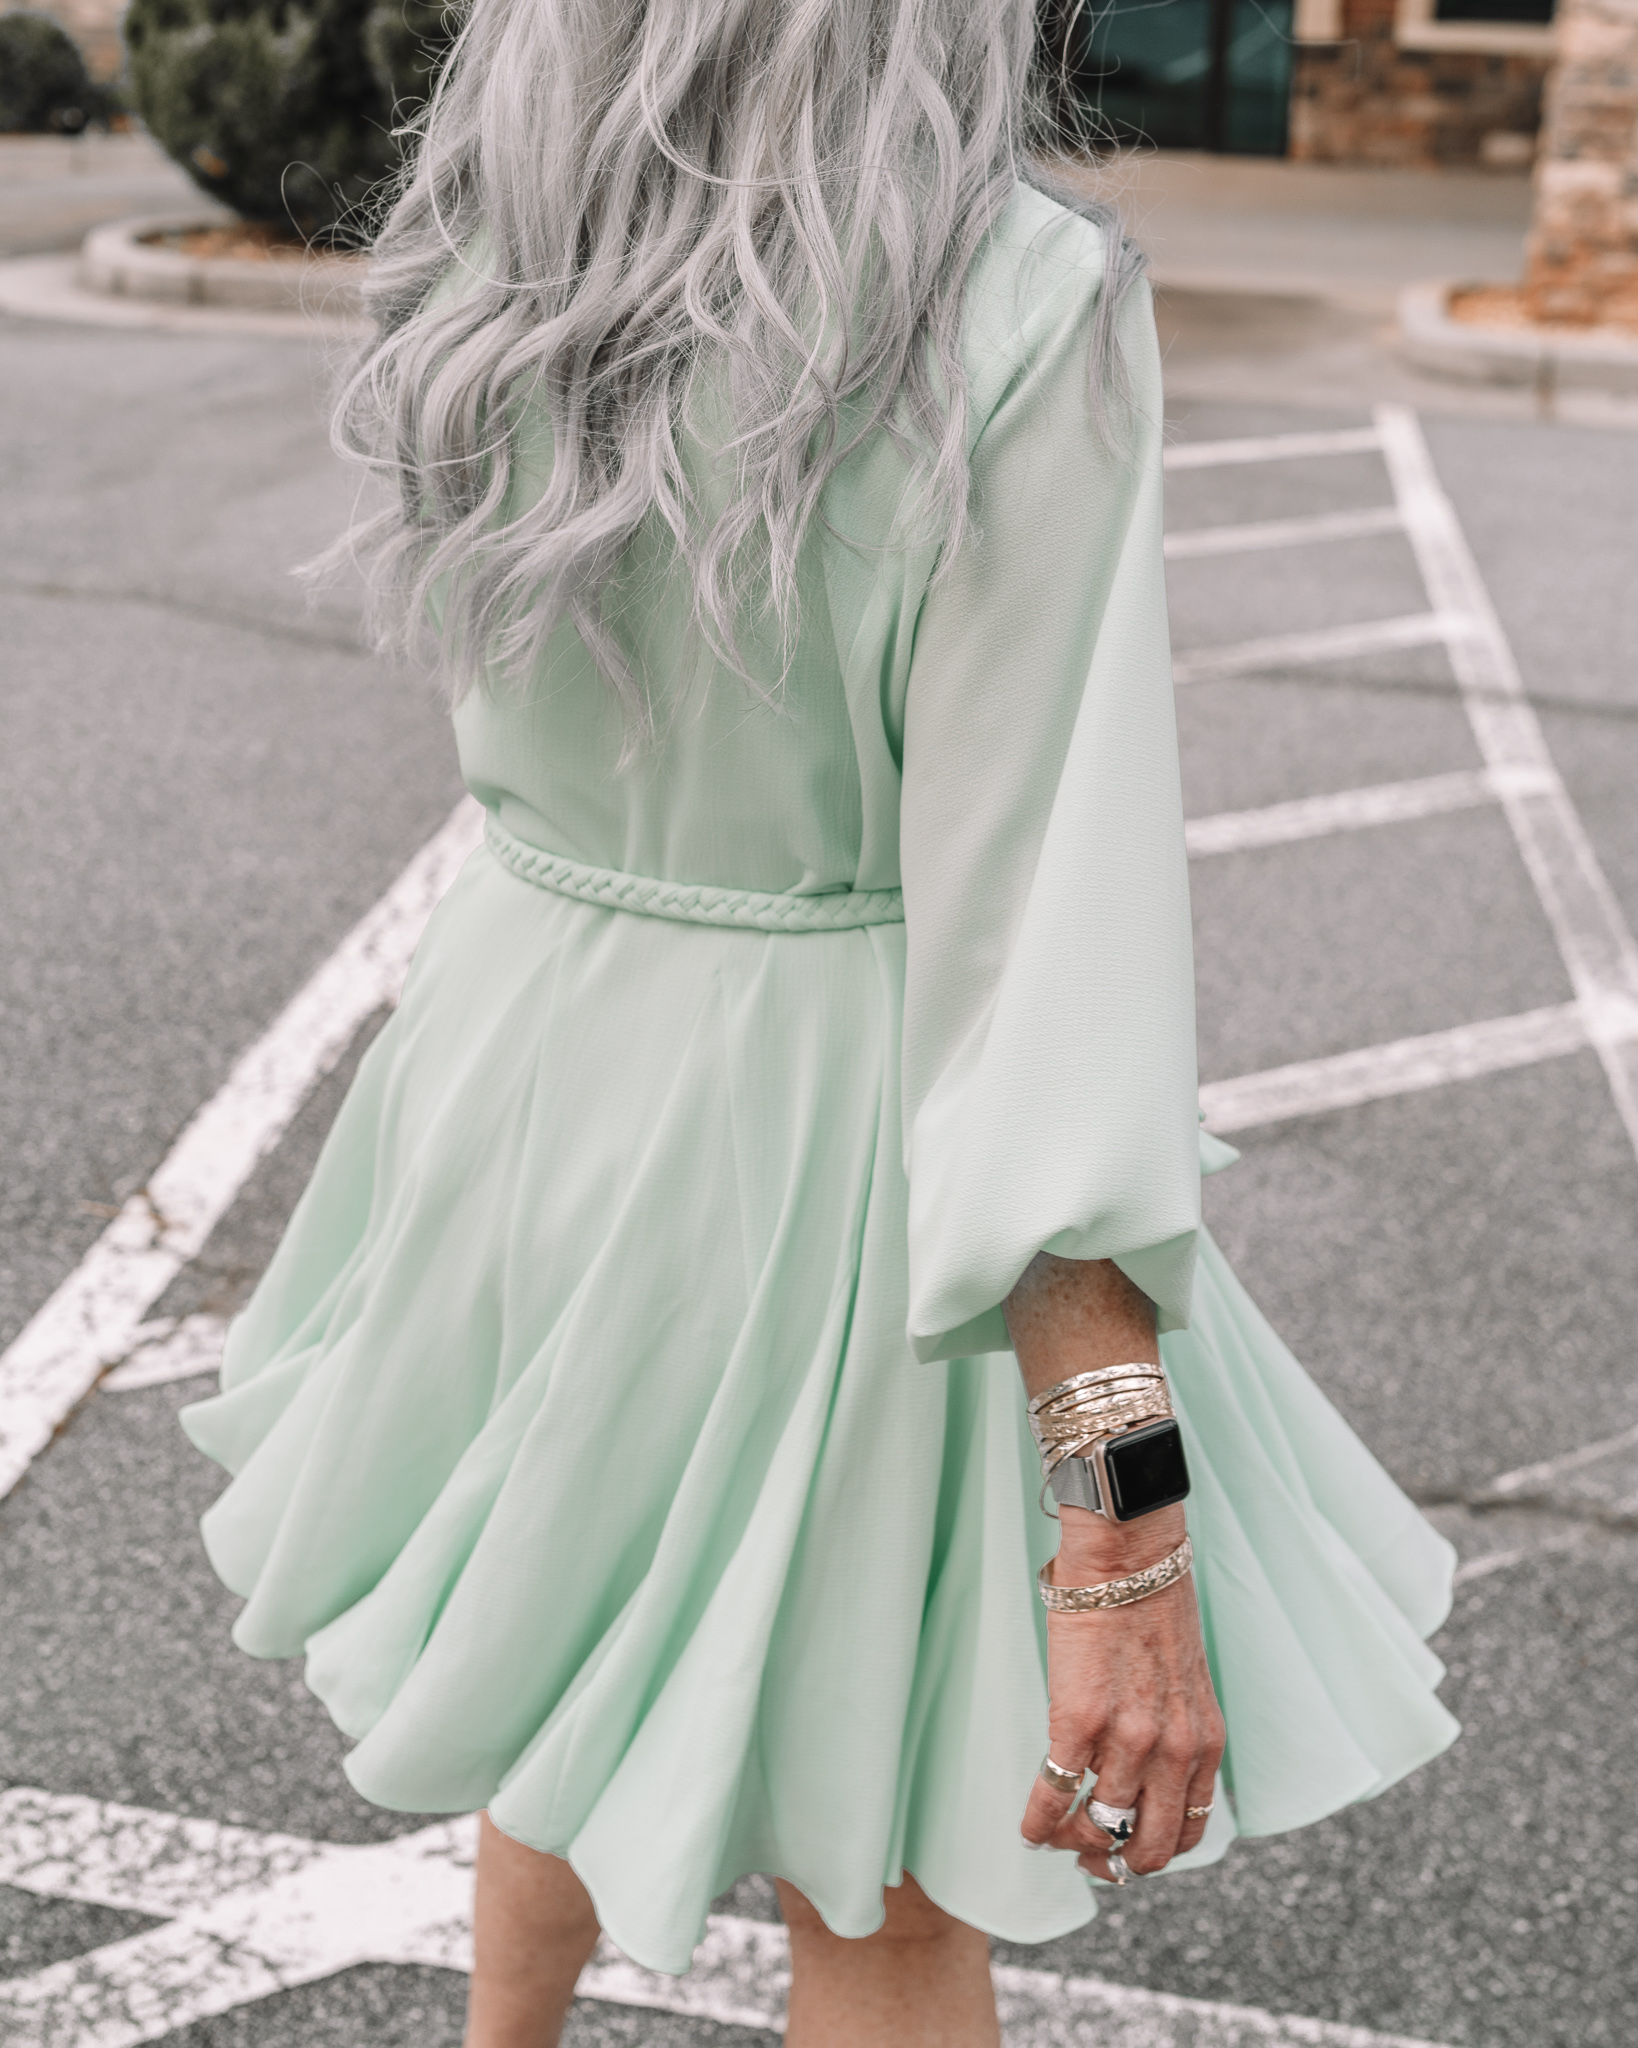 lisa in a mint green above the knee formal wedding guest dress and silver pumps